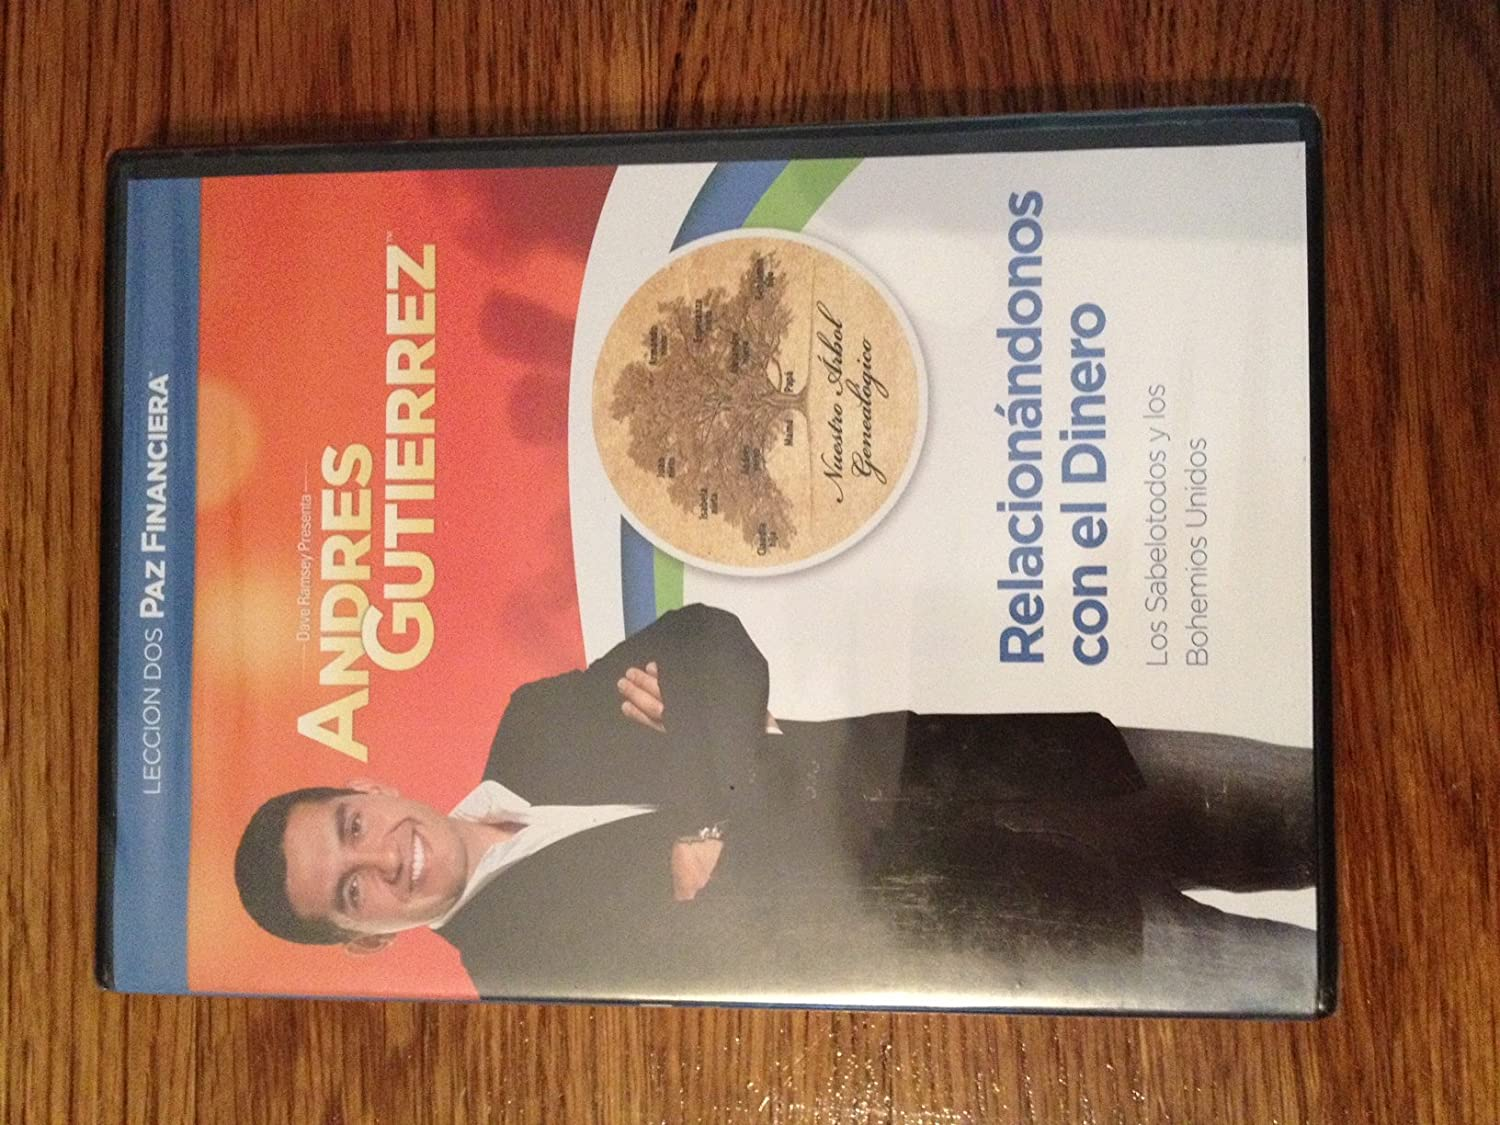 Amazon.com: Andres Gutierrez: Relacionandonos con el Dinero (Leccion dos Paz Financiera): Movies & TV